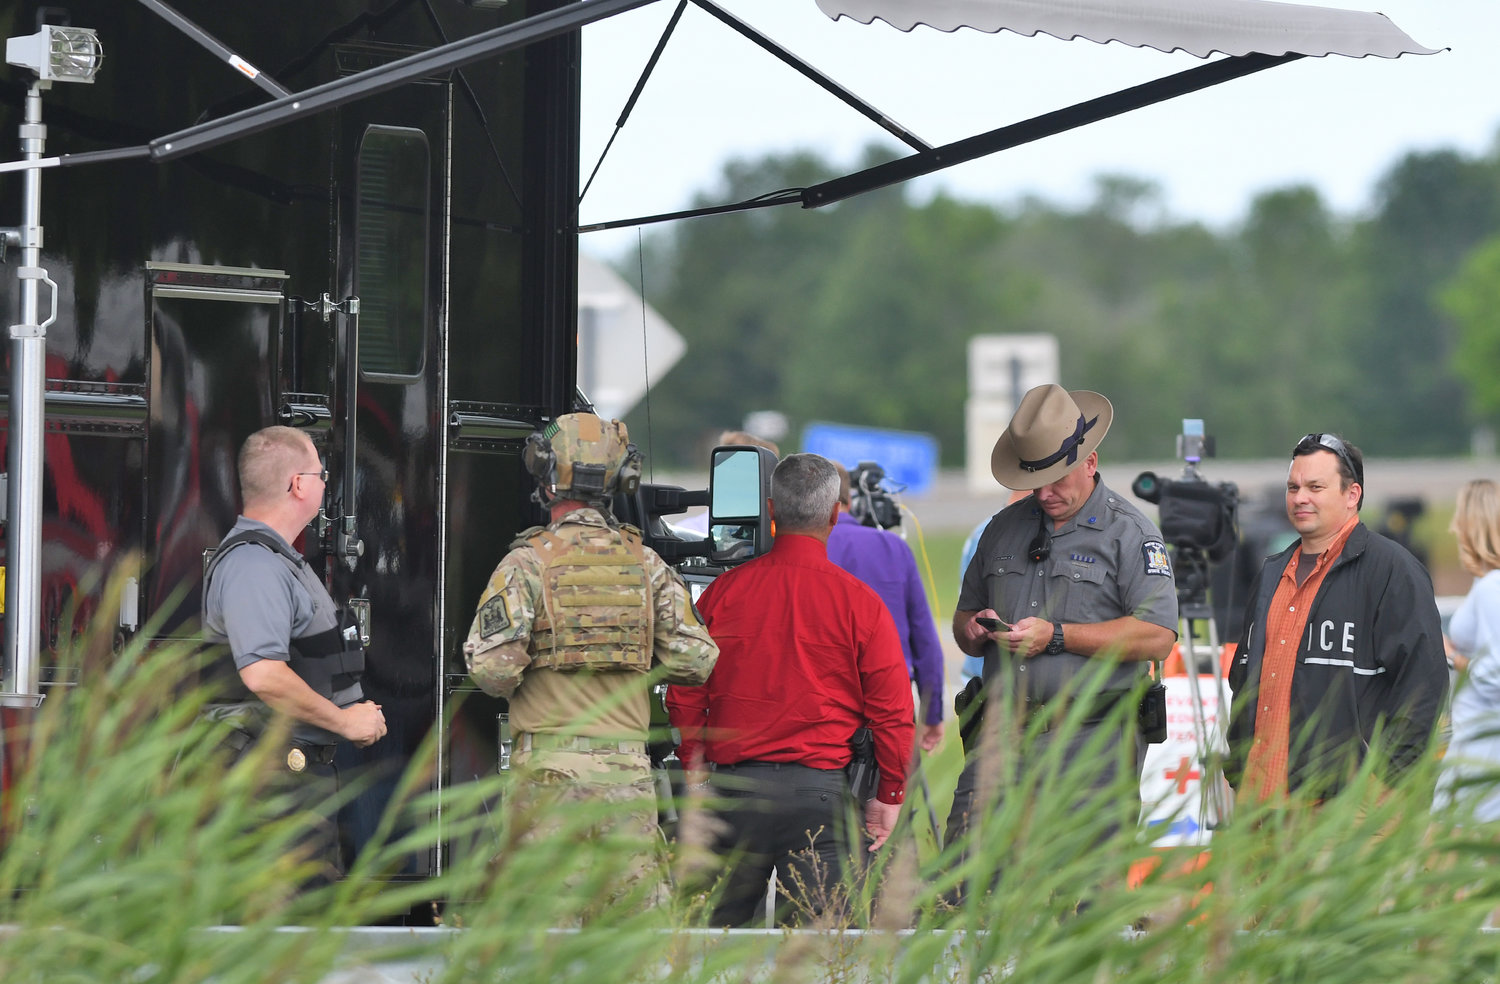 COMMAND CENTER — State police at the command center set up at the corner of routes 31 and 46 during Friday afternoon's standoff with an armed suspect.